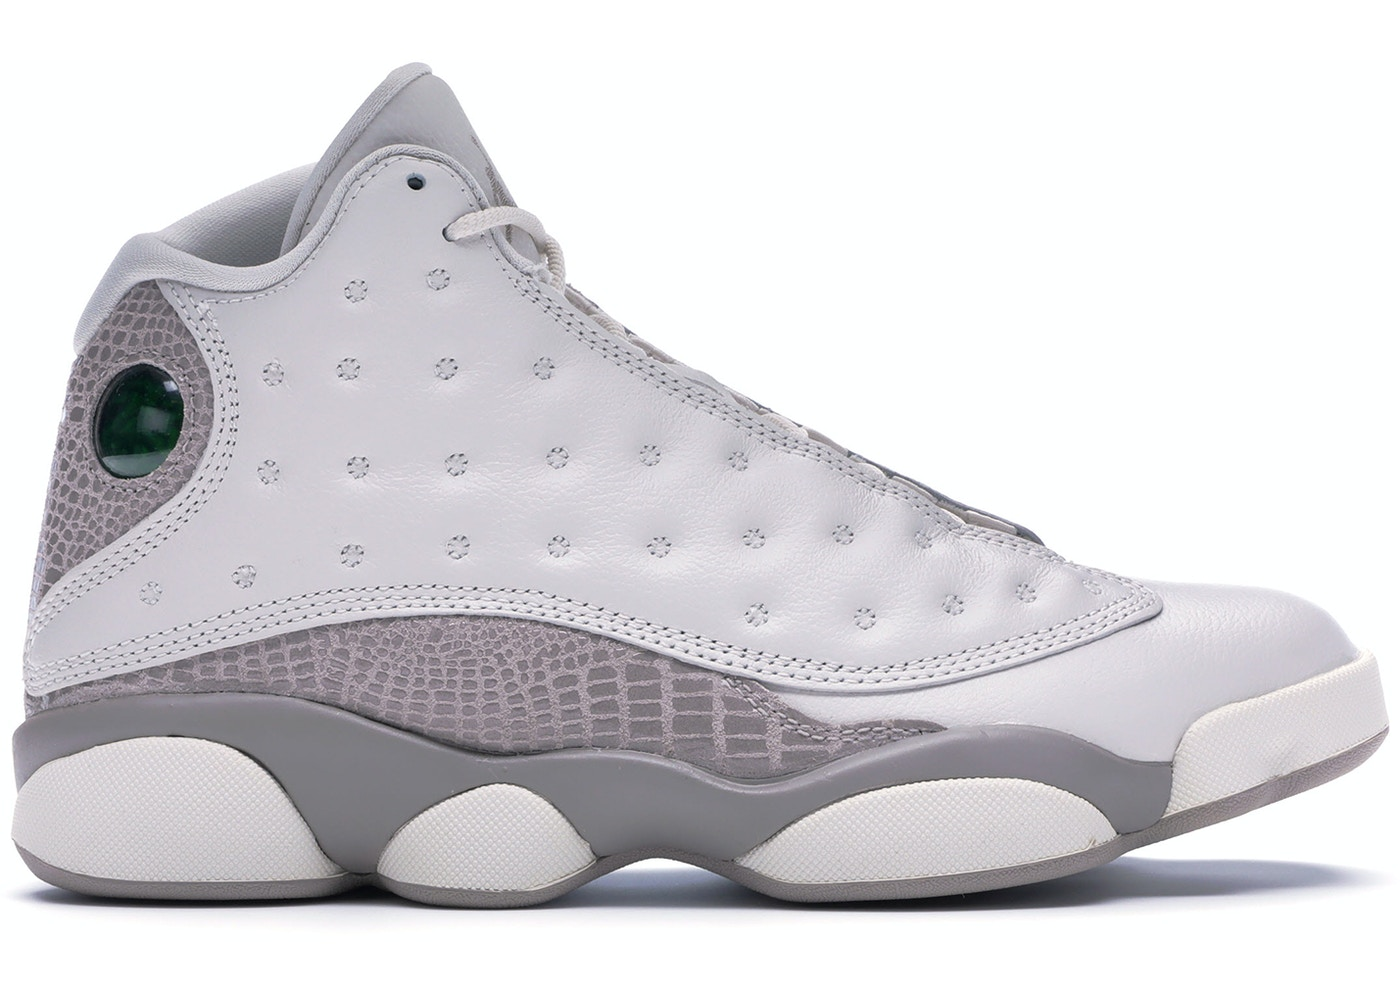 buy popular 88aa6 ebe1c Jordan 13 Retro Phantom (W) - AQ1757-004